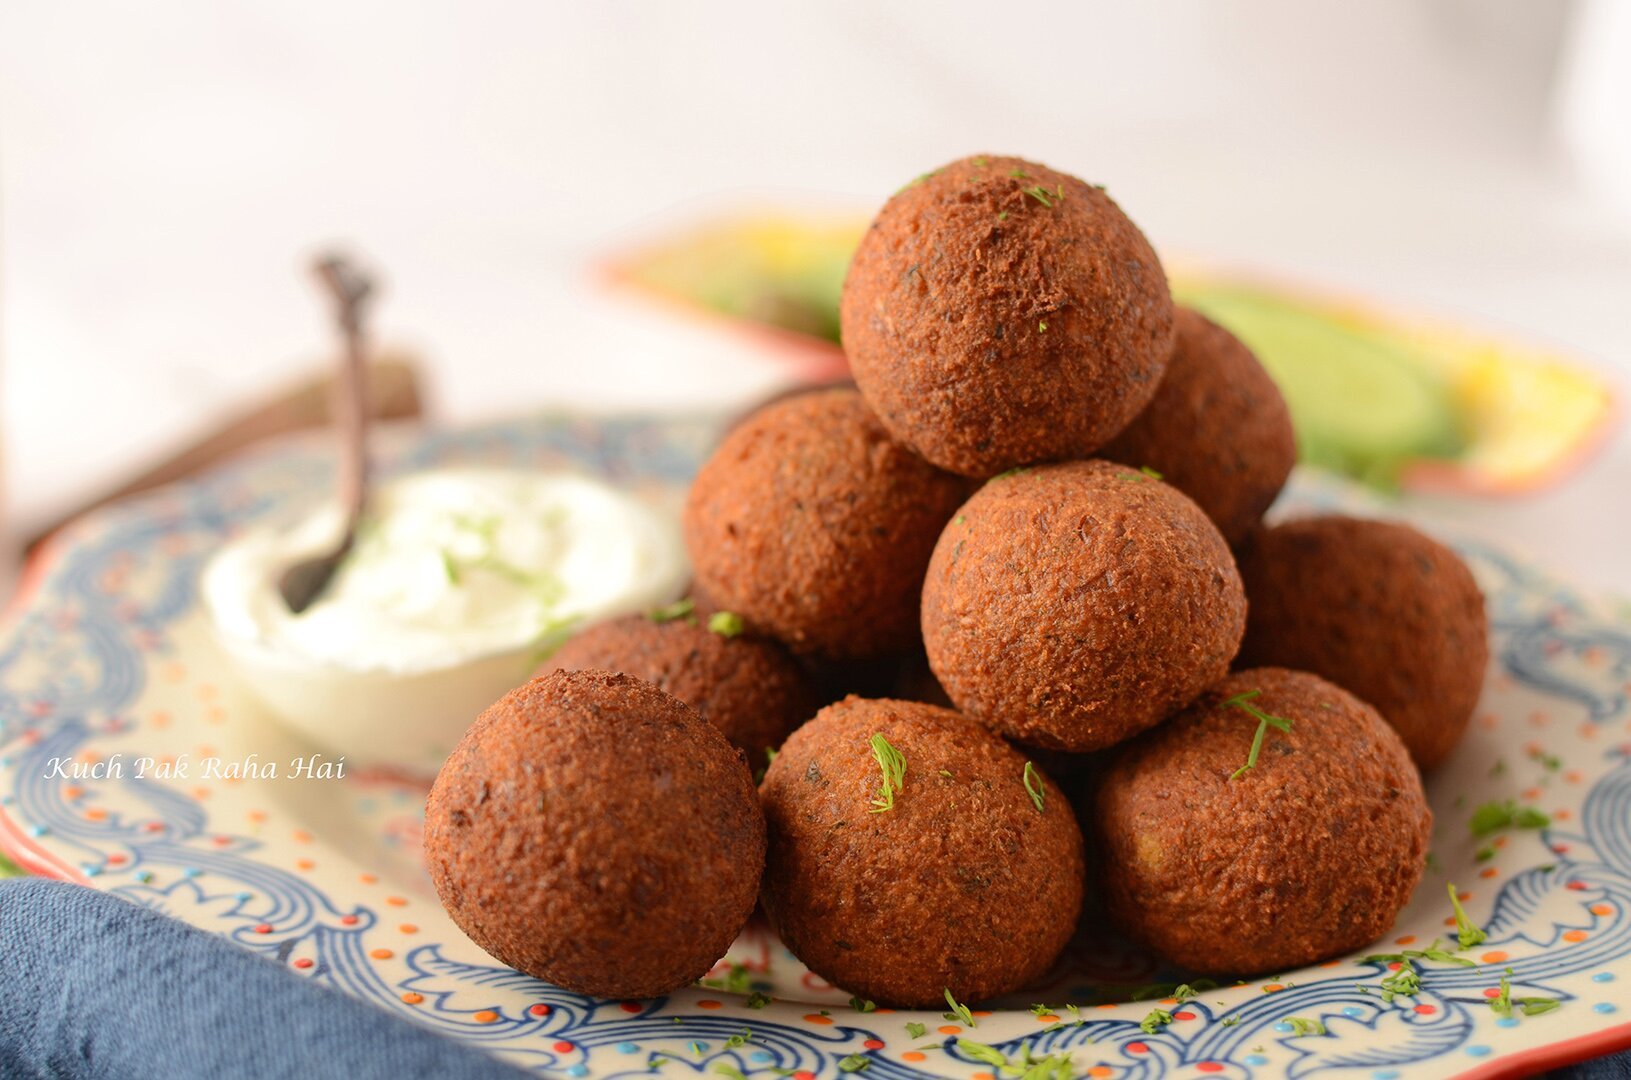 Easy Falafel Recipe using chickpeas Vegan Gluten Free Air Fryer